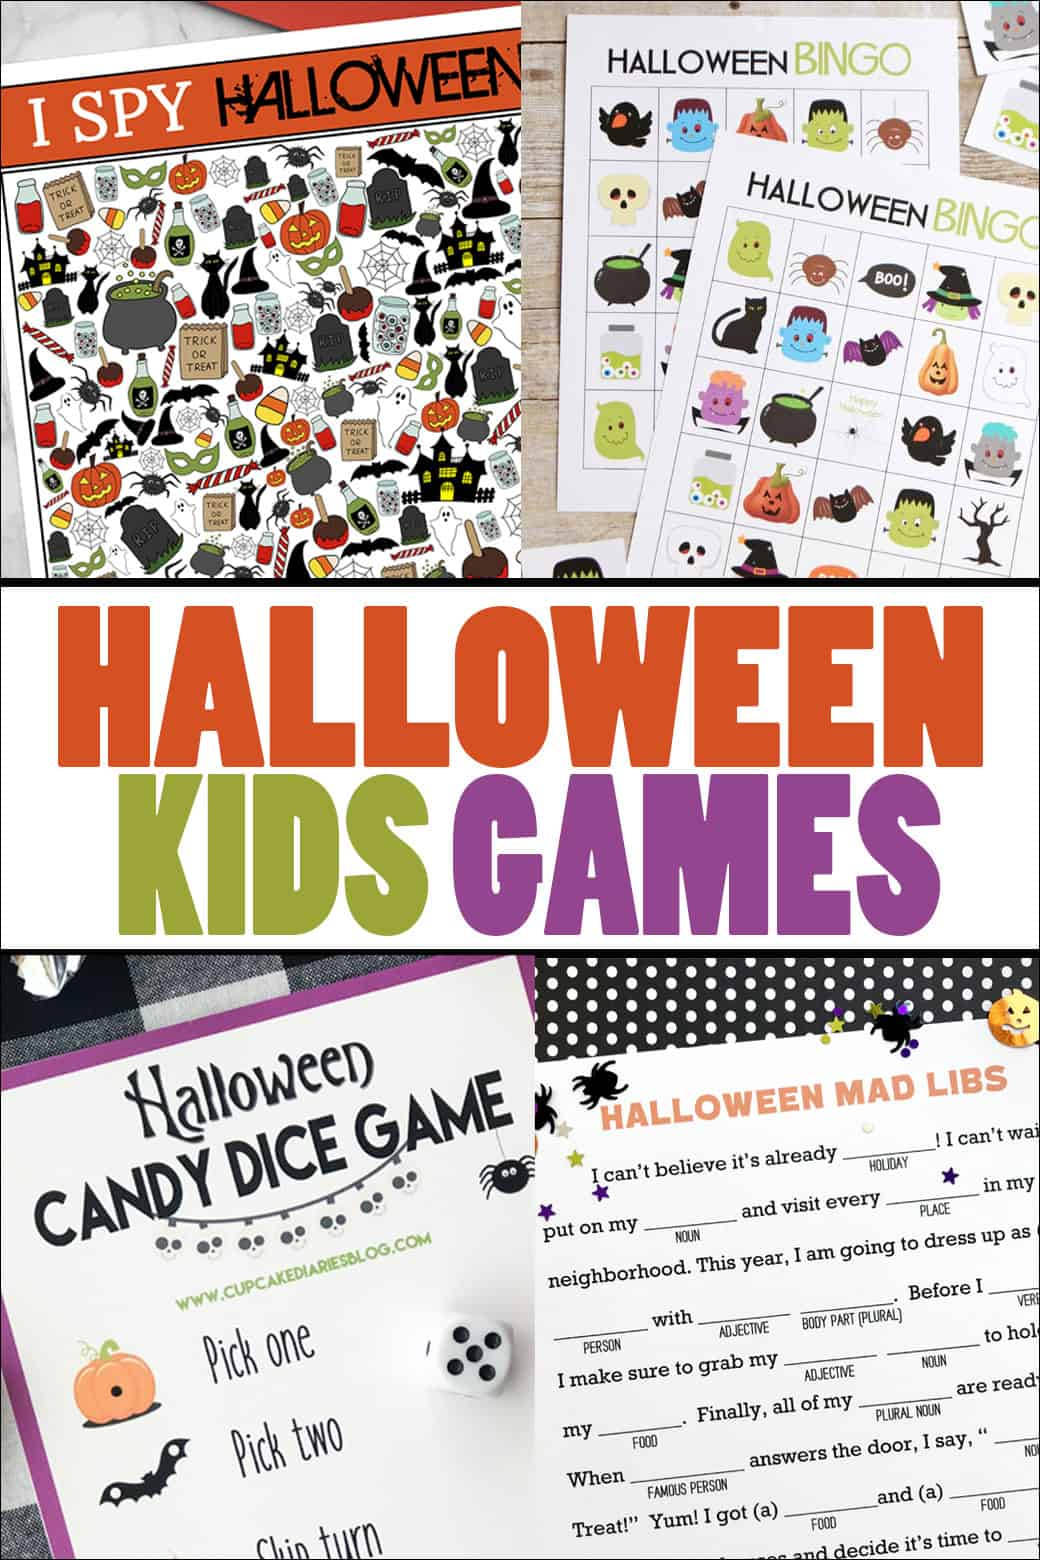 photo about Halloween Printable Games referred to as Halloween I Spy Printable Activity In excess of The Large Moon